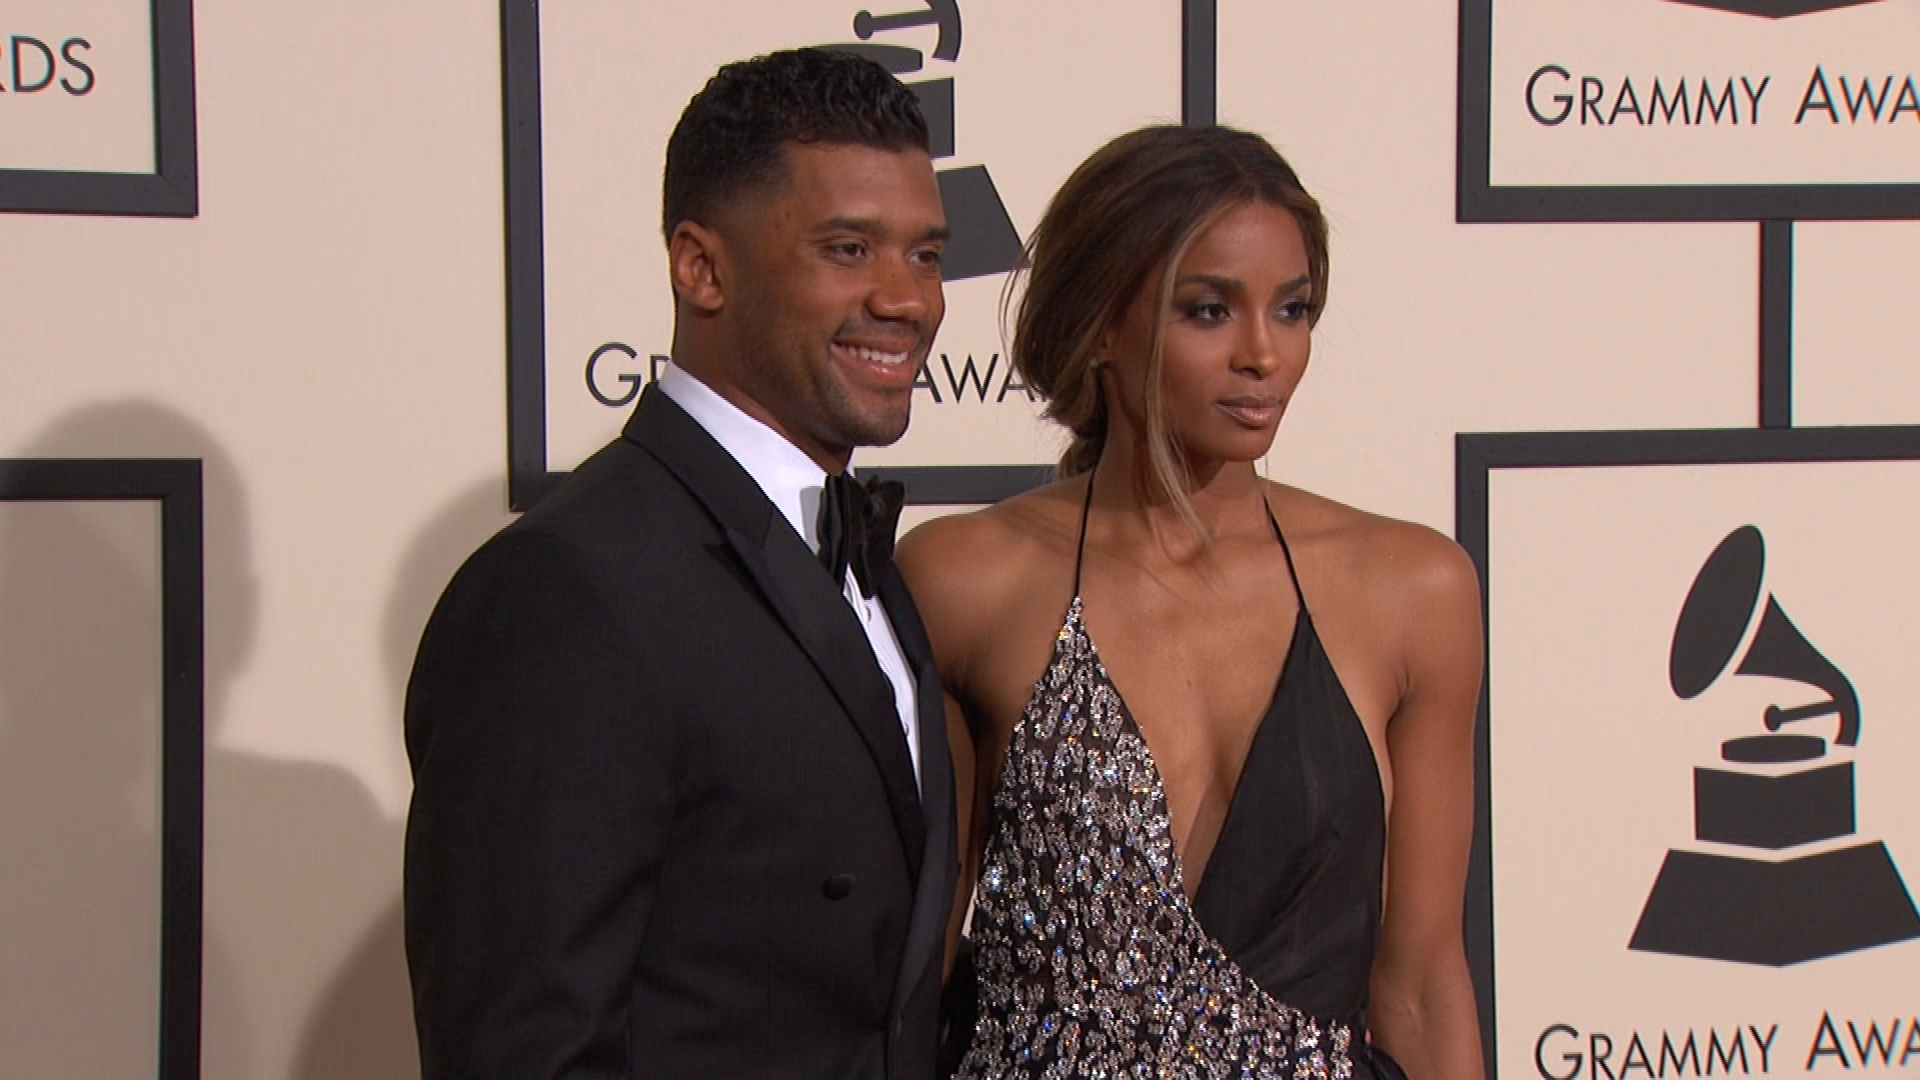 Surprise! Russell Wilson Pops the Question to Ciara